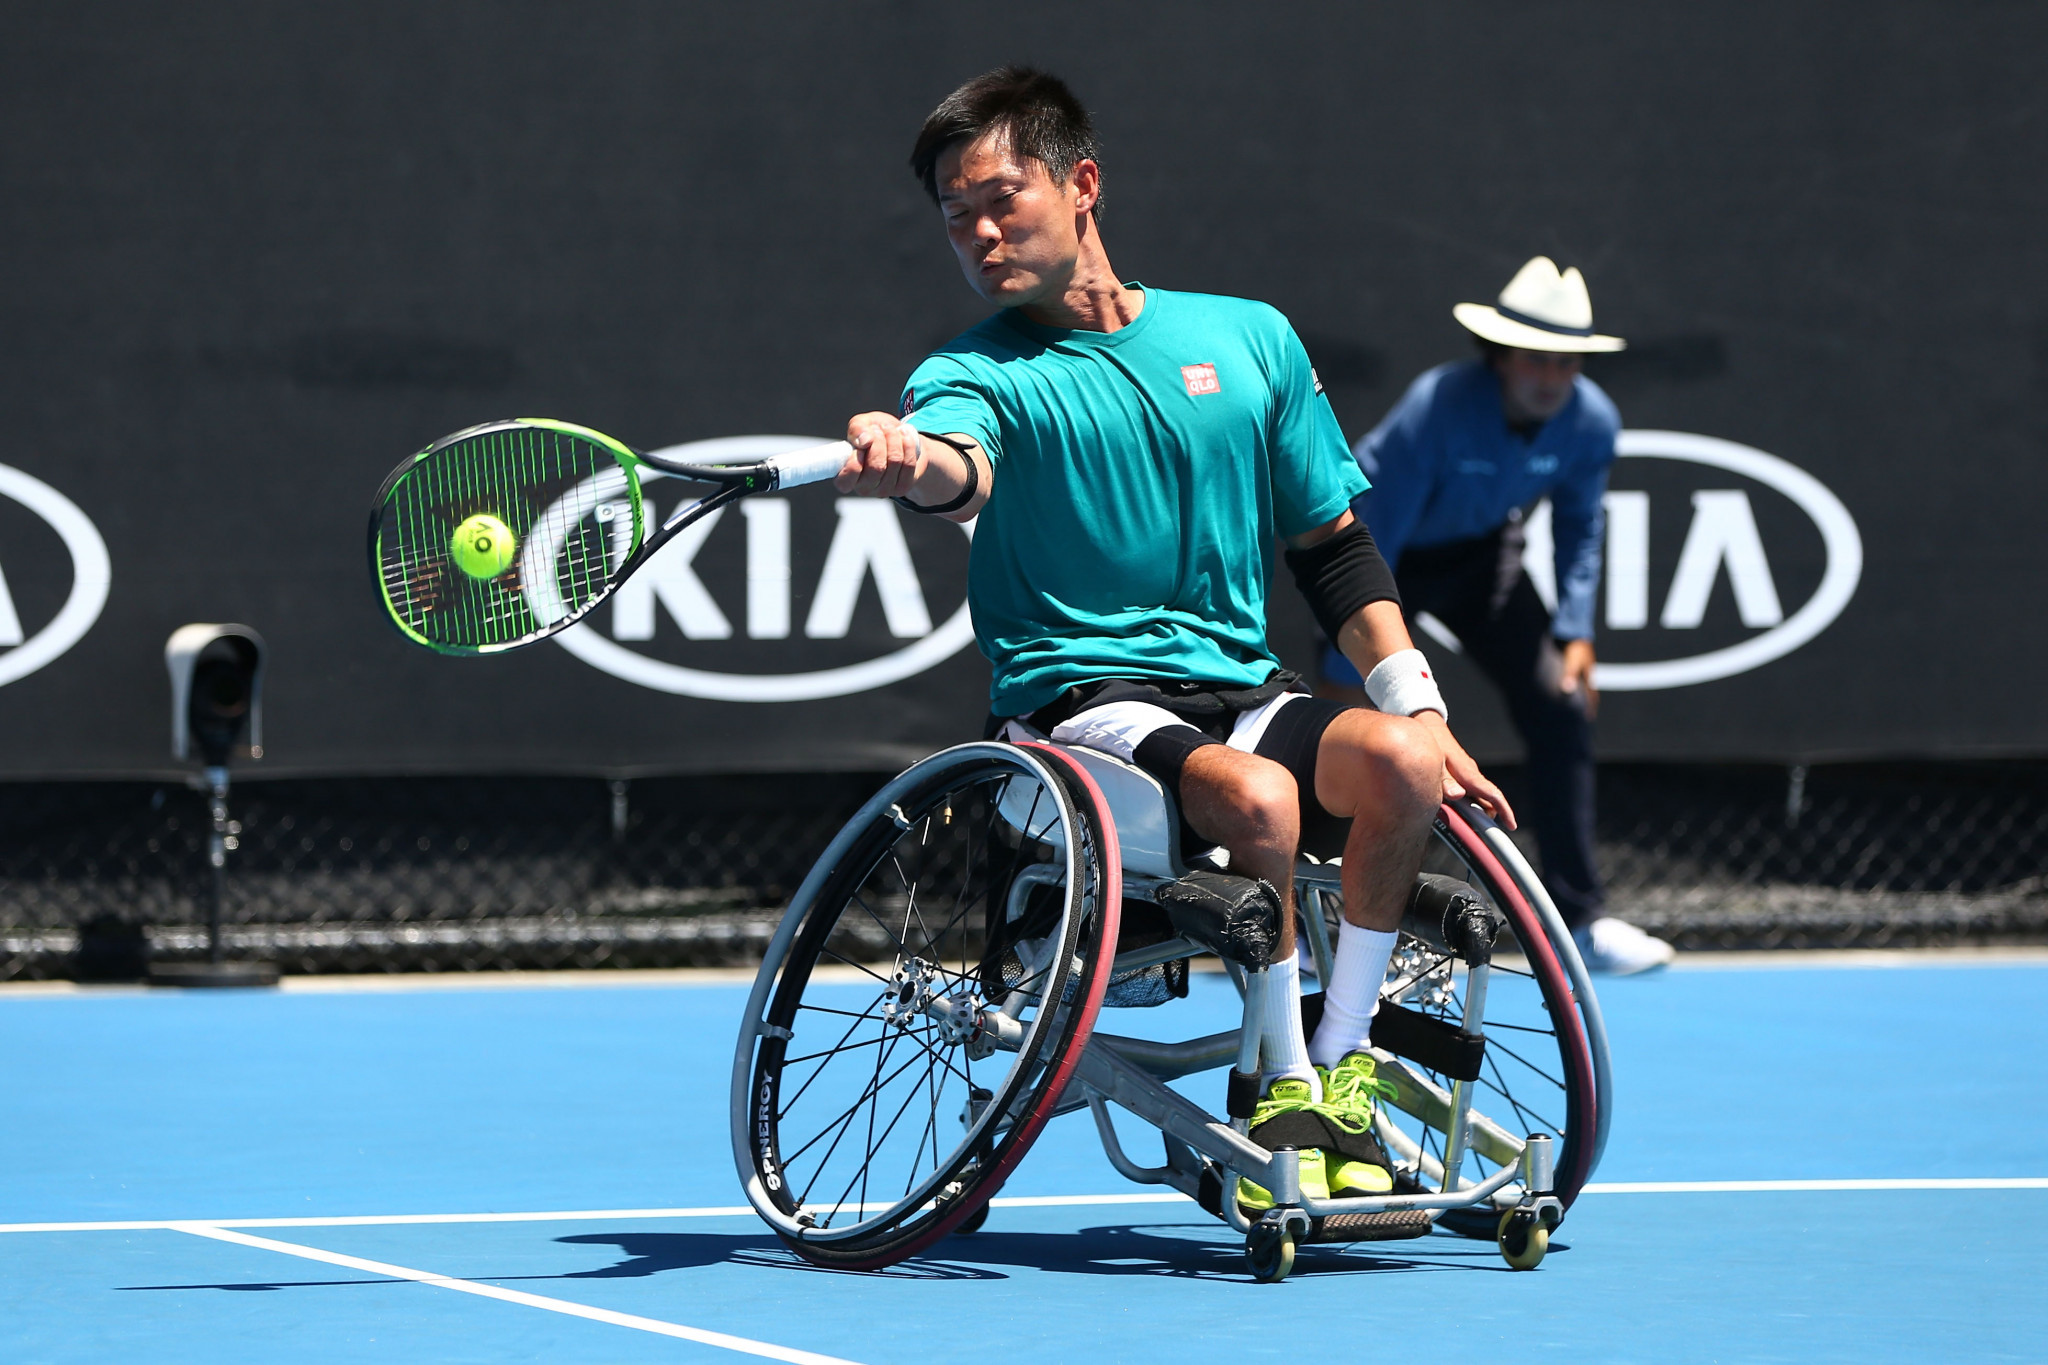 Shingo Kunieda advanced to the men's singles final ©Getty Images